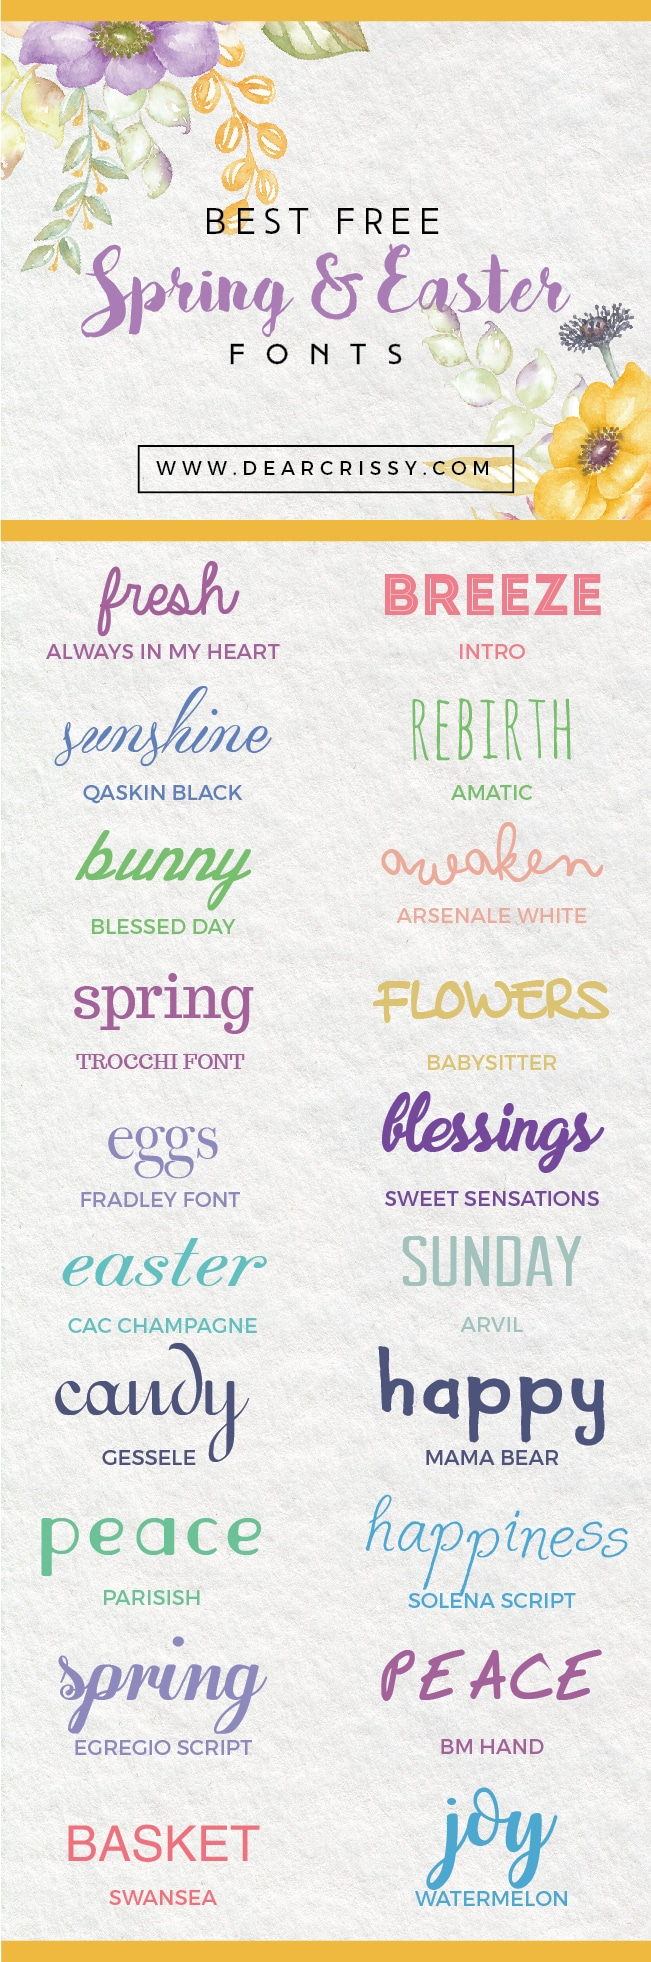 Best Free Easter Fonts (Free Spring Fonts!)